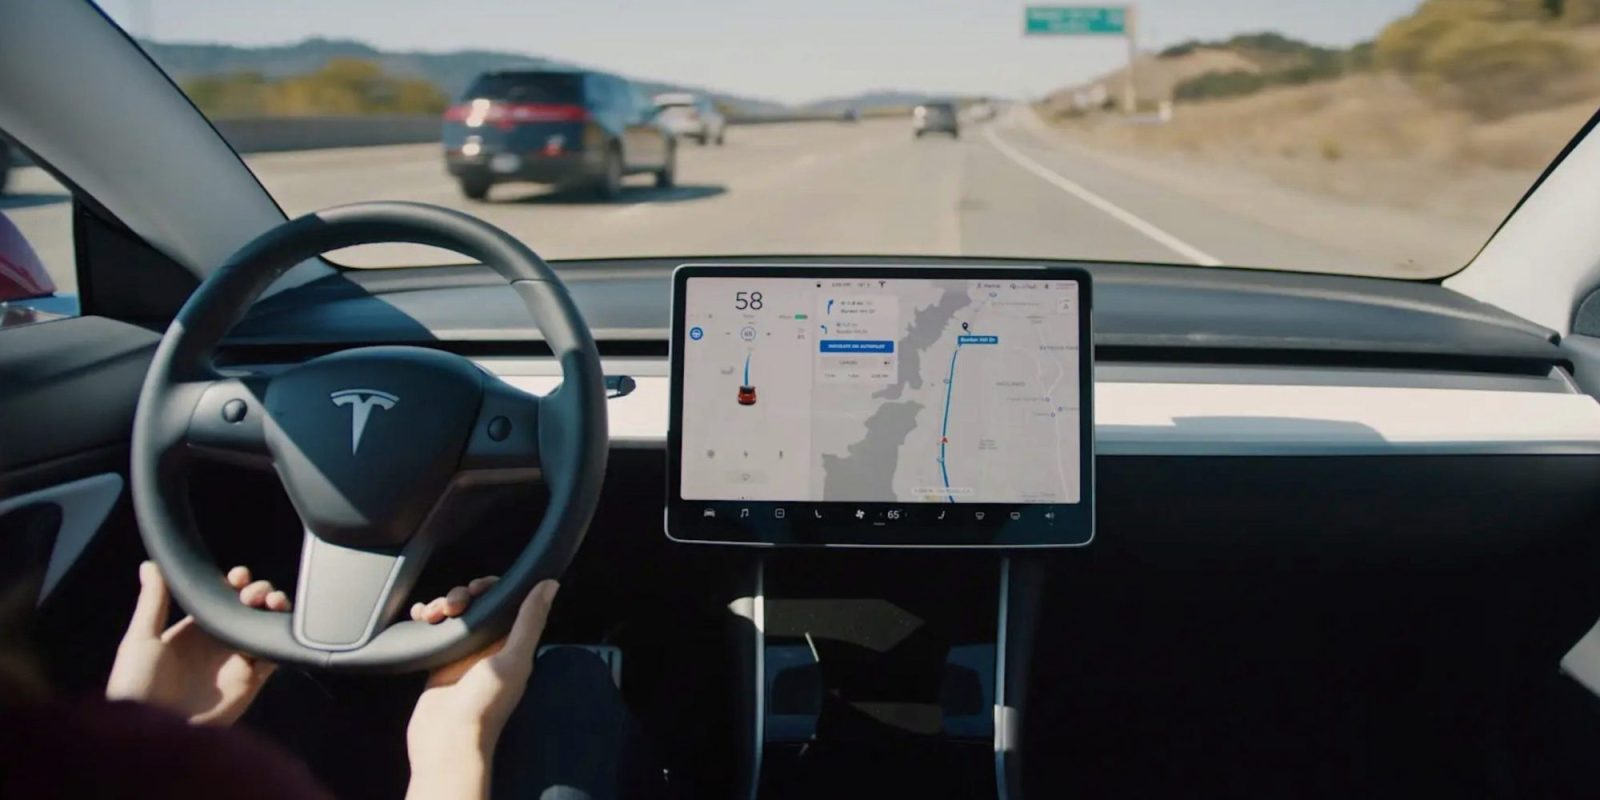 Senator Ed Markey, co-architect of Green New Deal, is wrong about Tesla Autopilot